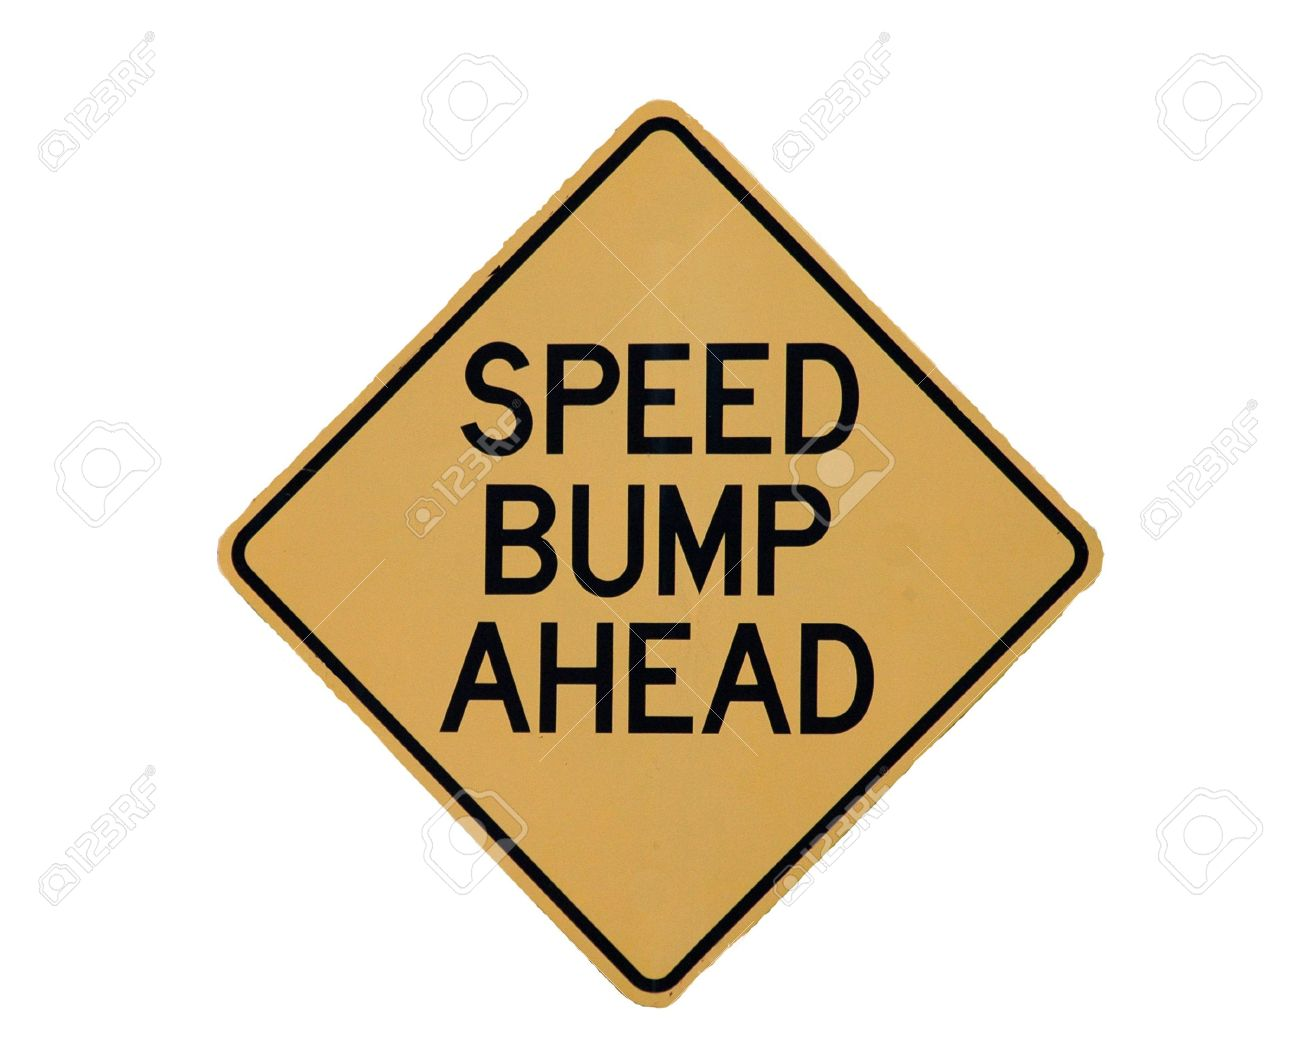 Speed bump clip art svg Speed Bump Ahead Sign Stock Photo, Picture And Royalty Free Image ... svg